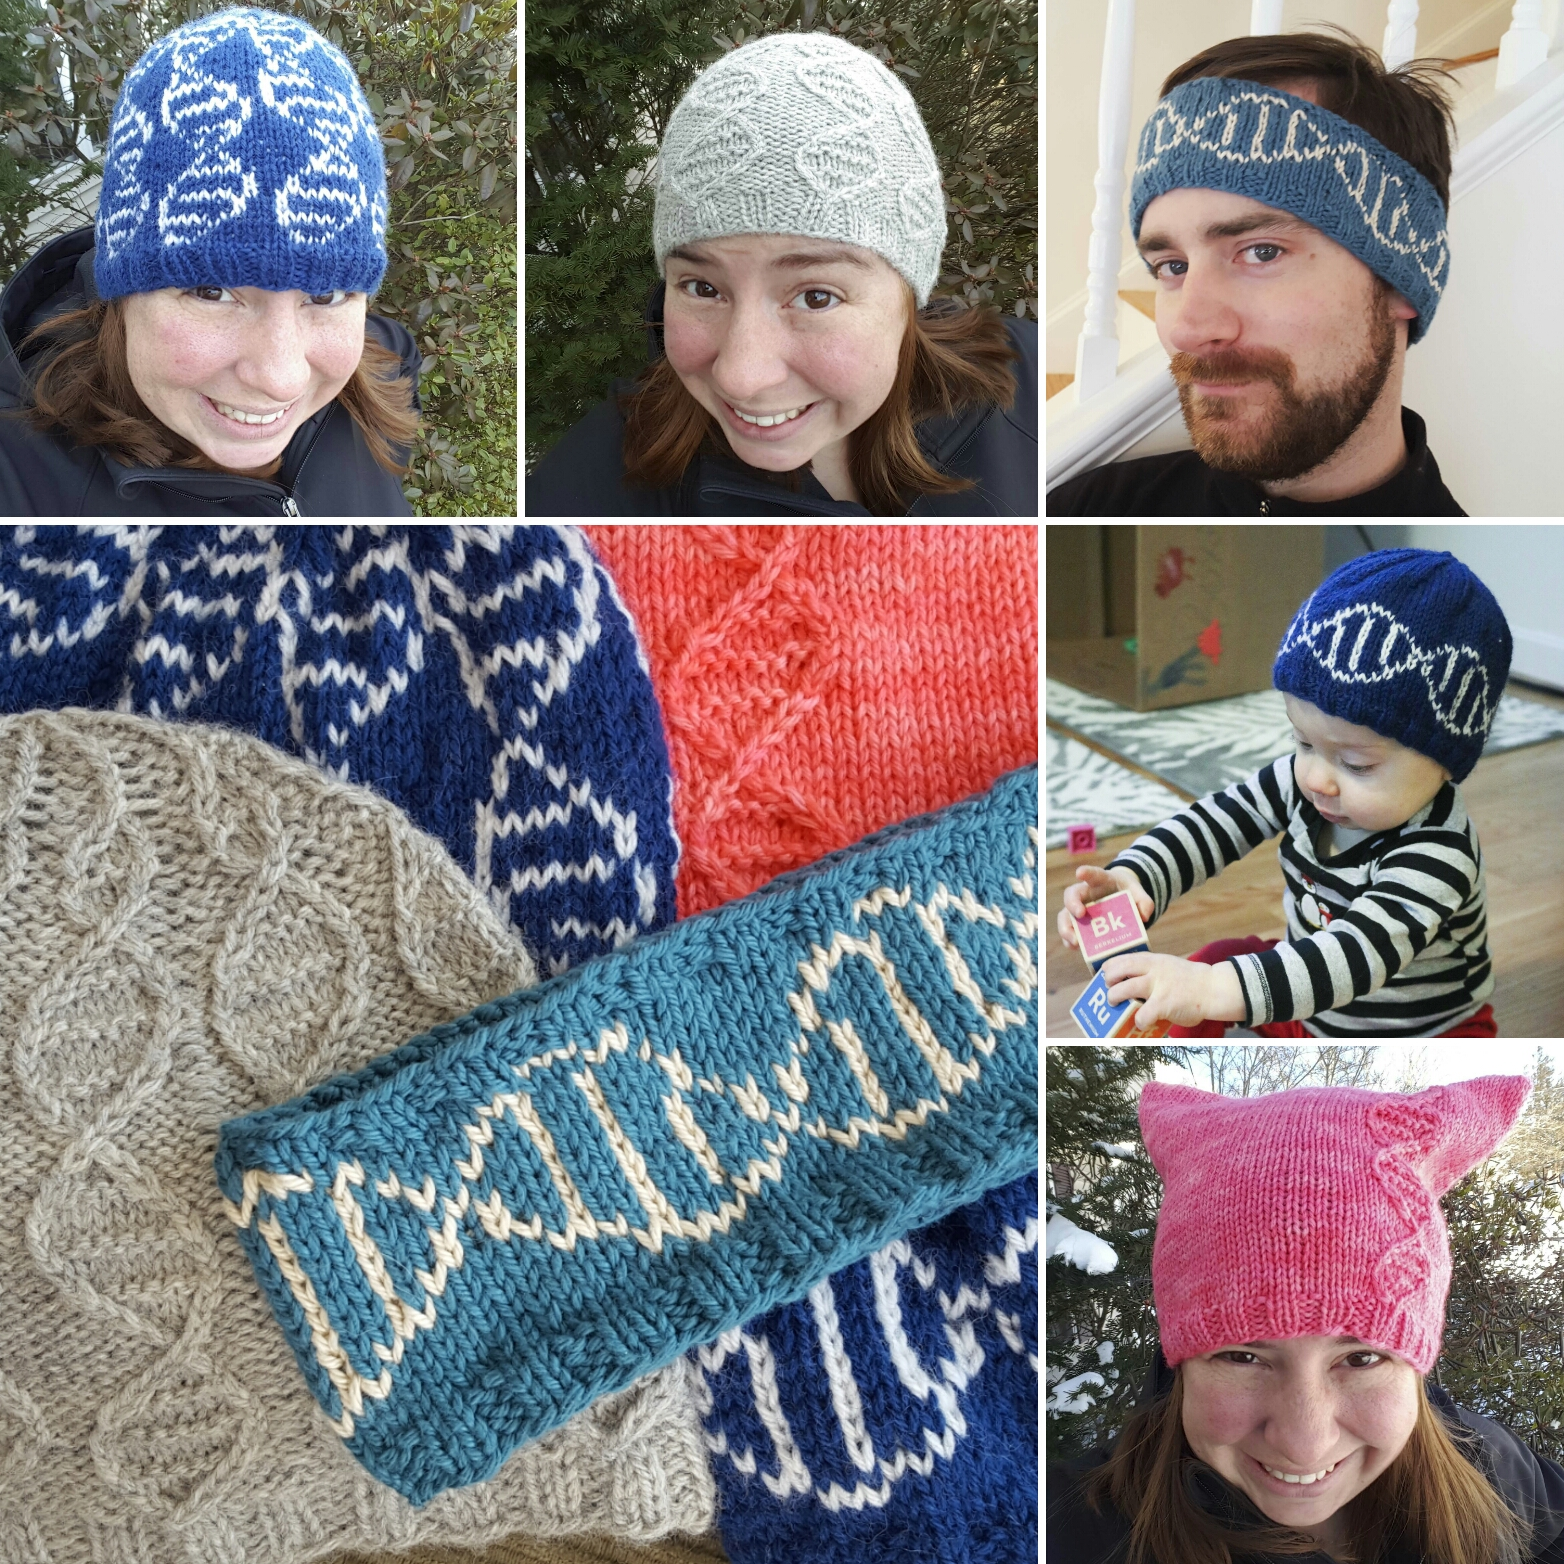 Chemknits the geneie collection of dna beanie hats the first 5 patterns of the geneie collection designed by chemknits in support of the march for science geneie colorwork version geneie cable version jeuxipadfo Images